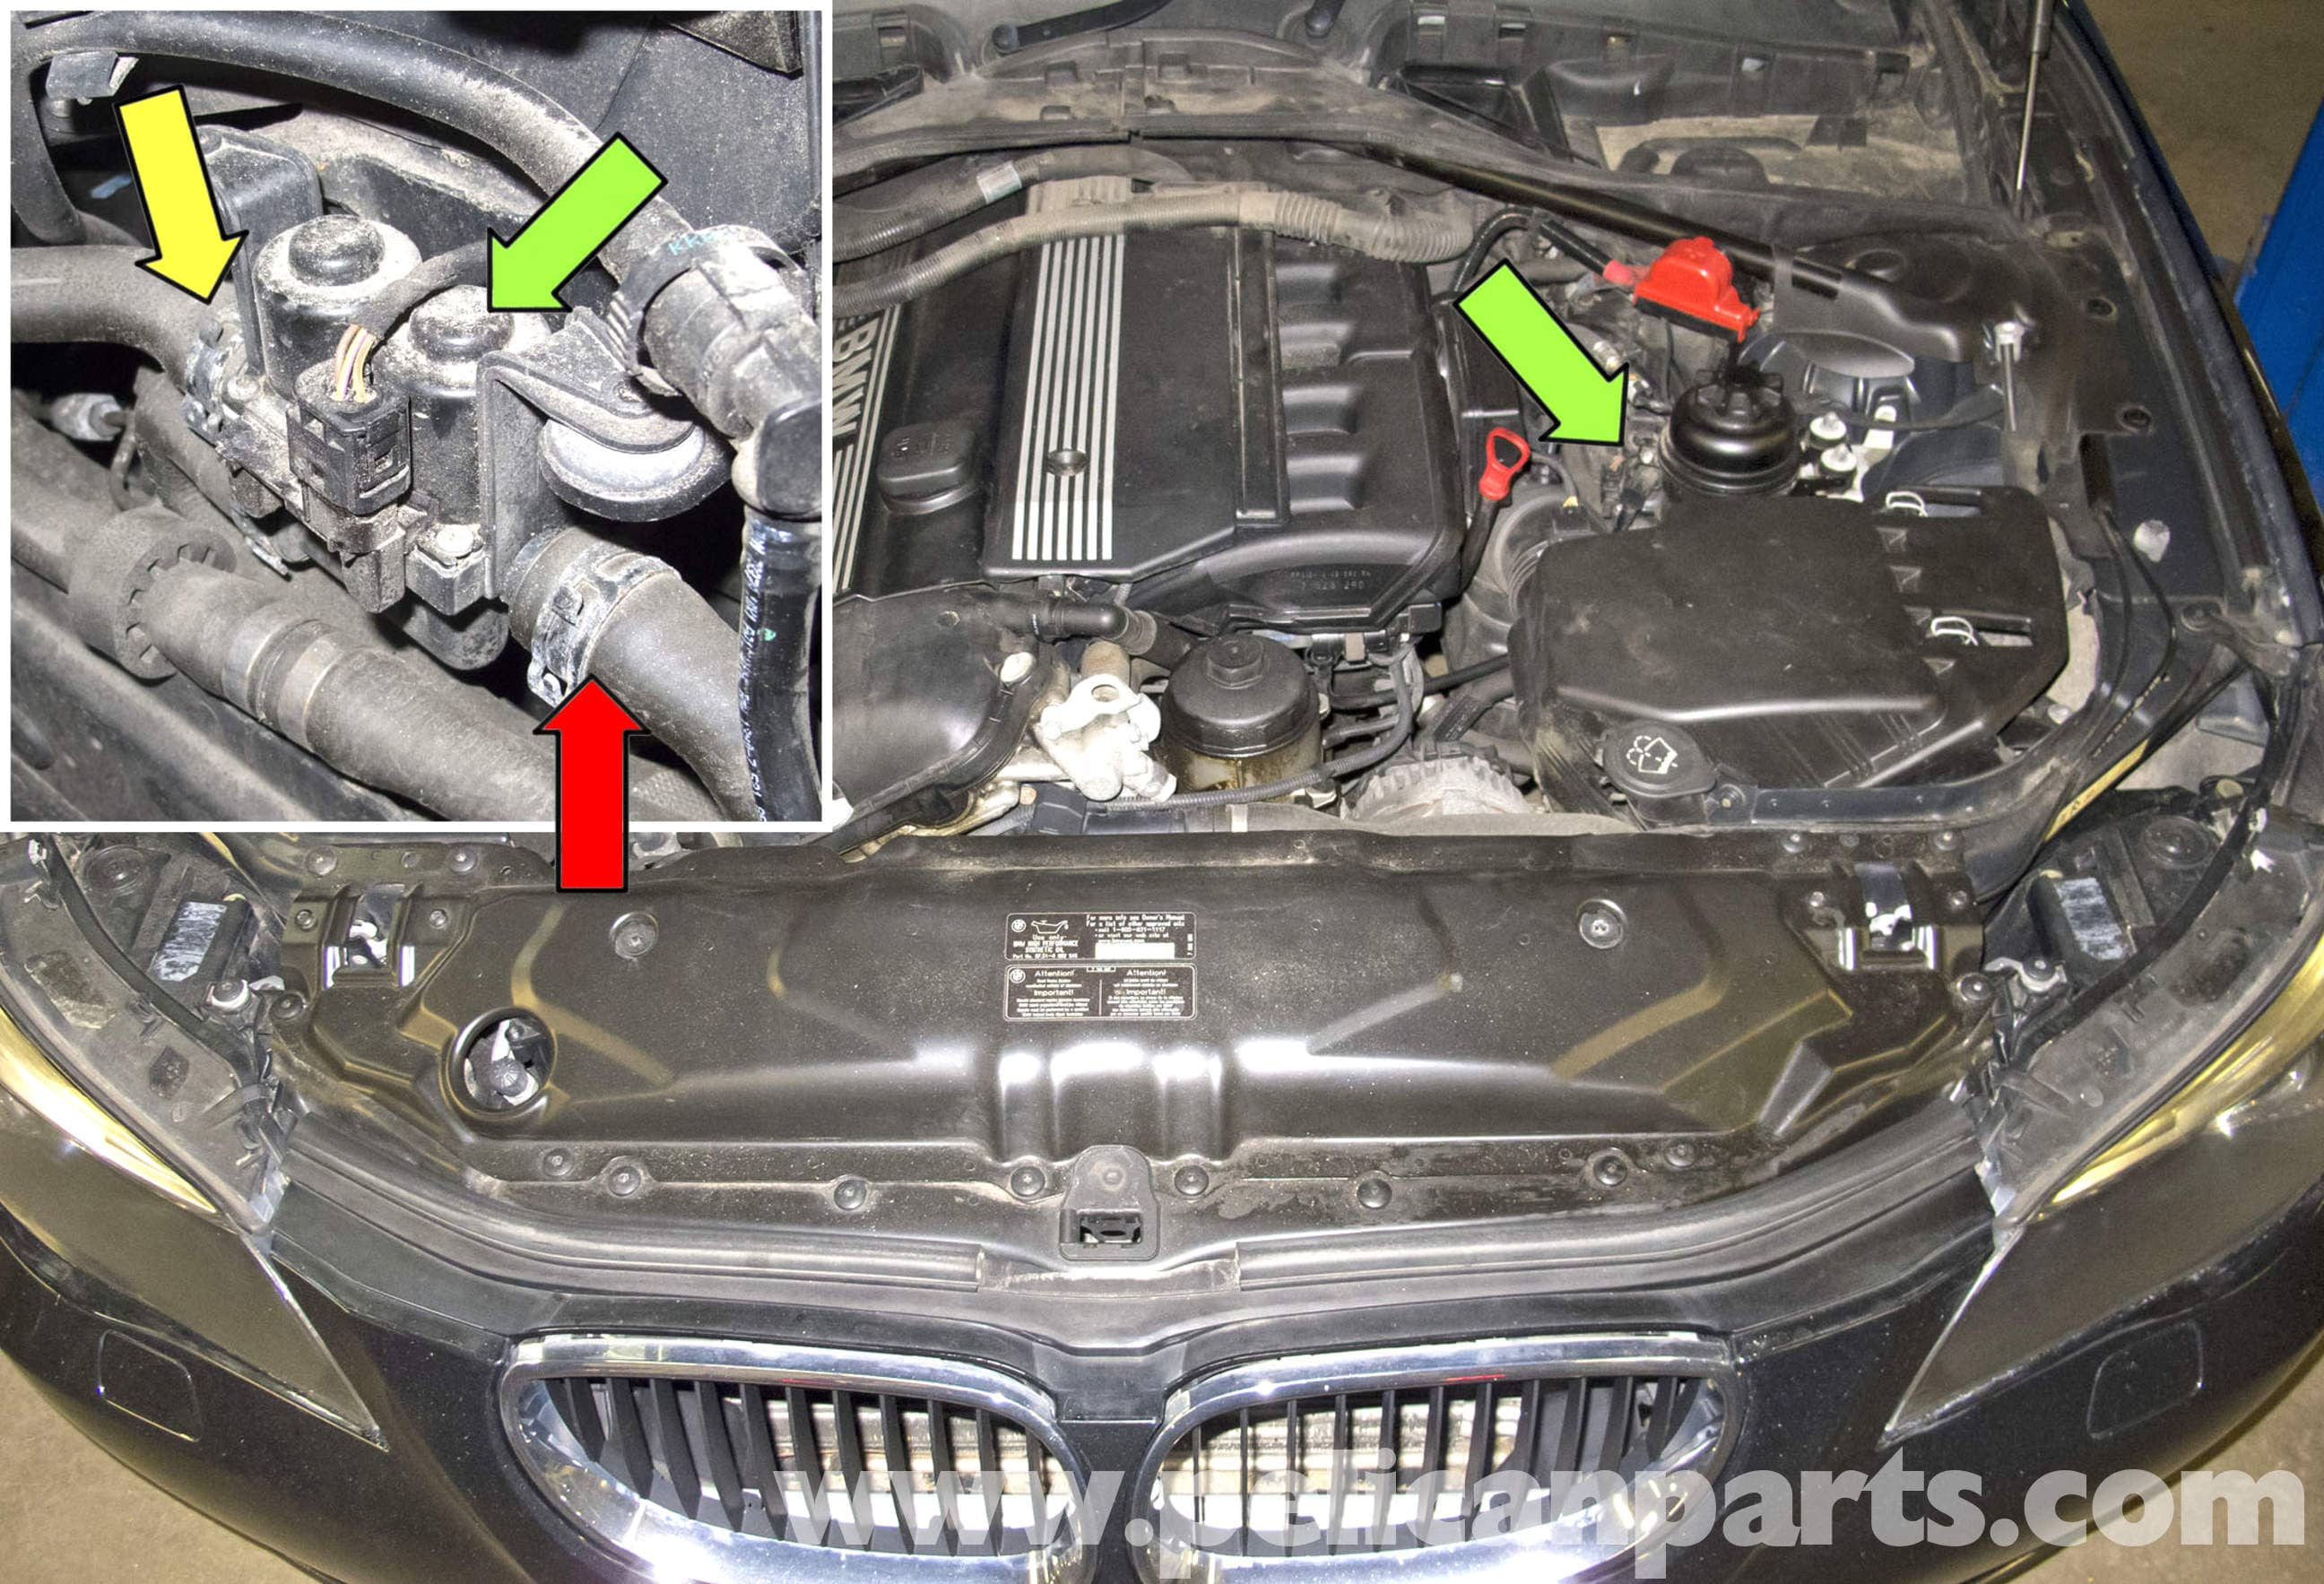 BMW E60 5-Series Heater Valve Testing and Replacement - Pelican